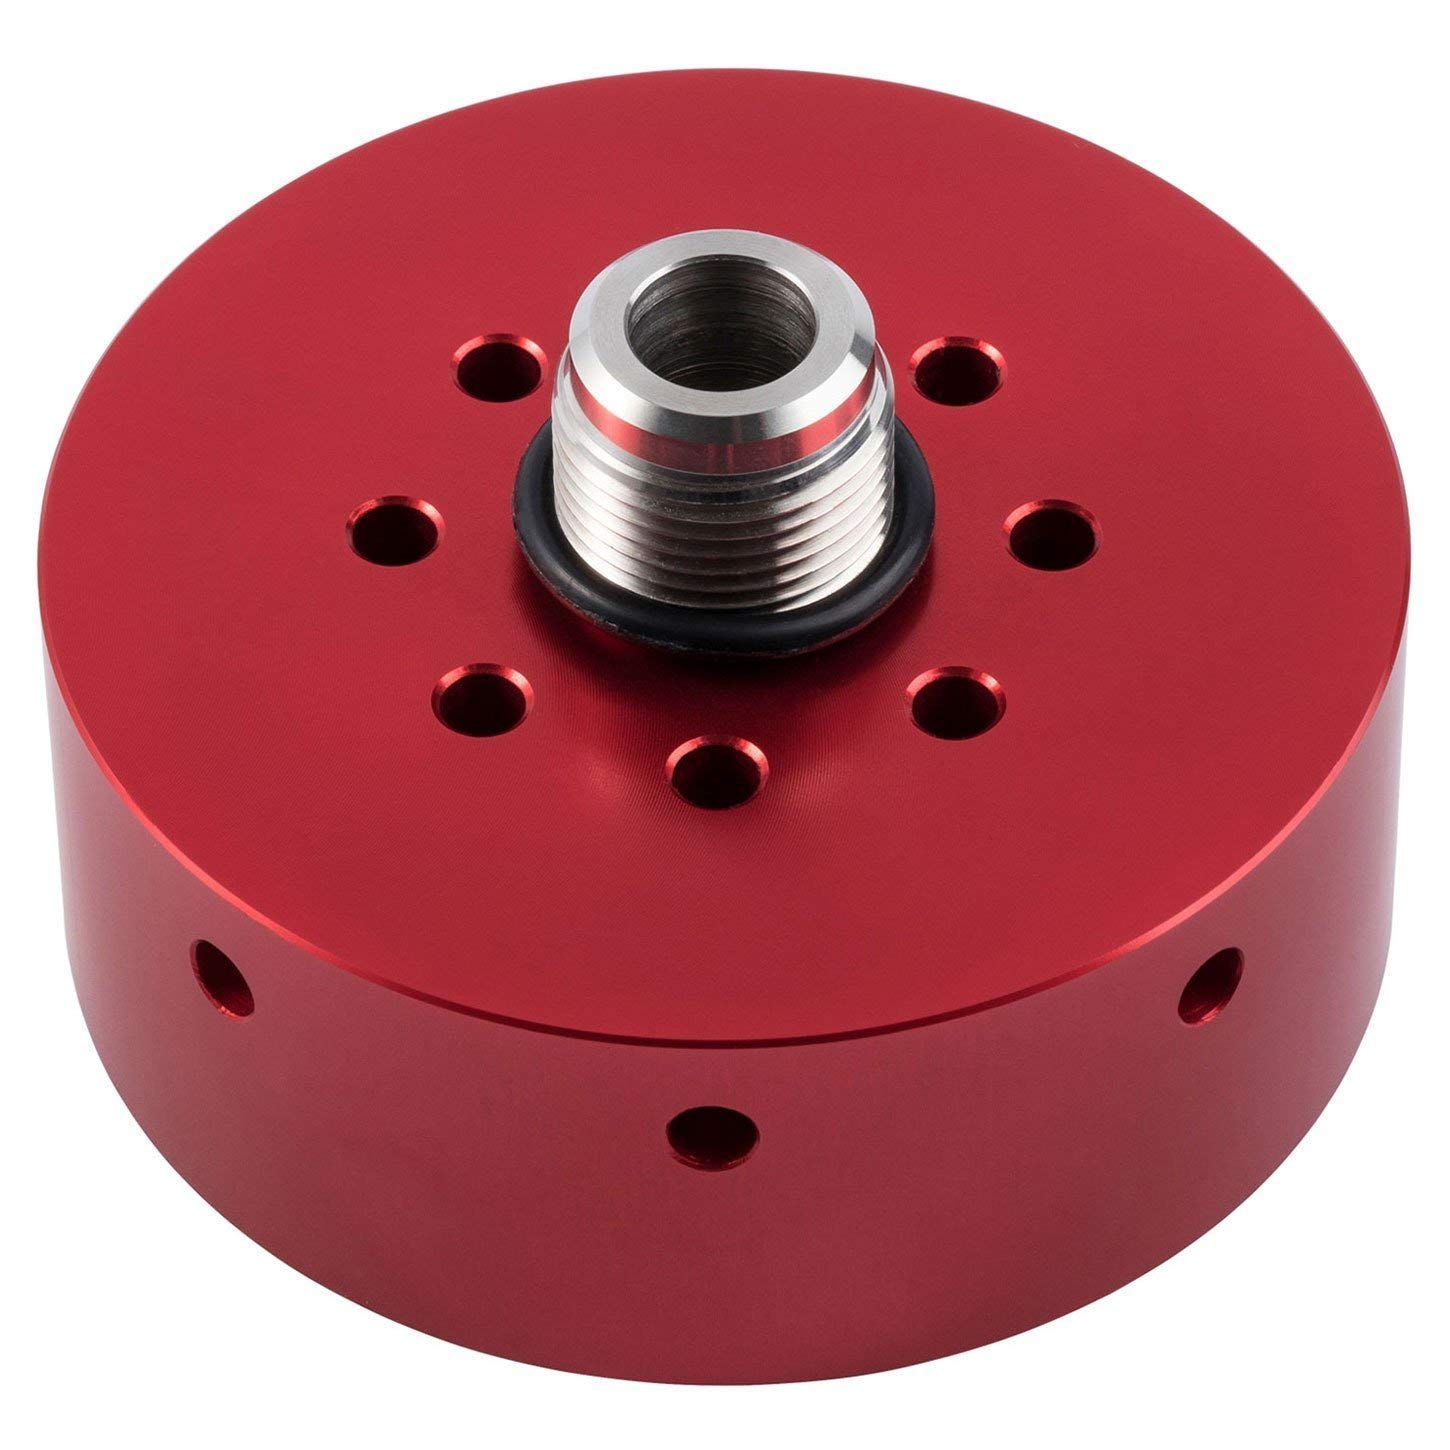 Opall Fuel Filter Adapter Refit Head Red Auto 02 Chevy Duramax Housing Amazon Prime